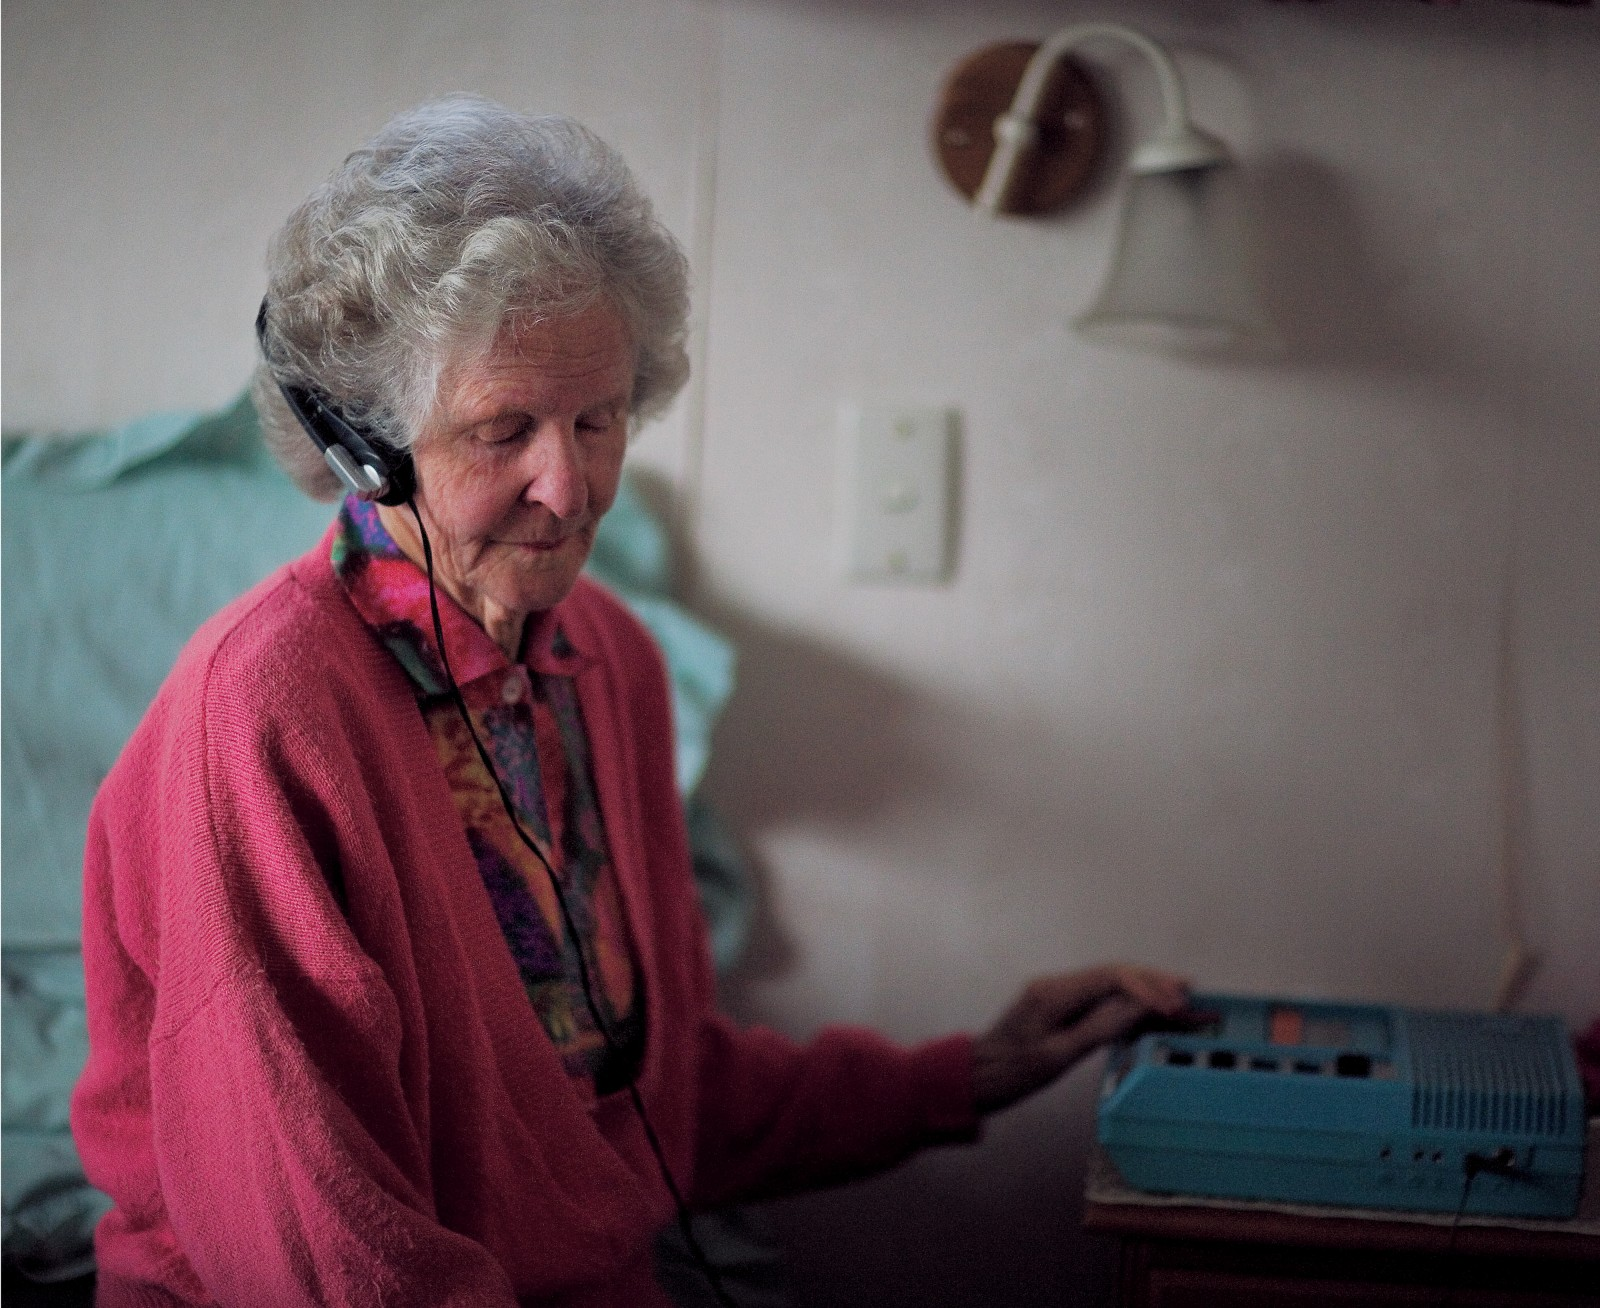 Inveterate reader of talking books, Aileen Carrington, has played literally thousands of books through her special foundation cassette player (blue). The players are deliberately clunky with large, brightly coloured controls so those with residual sight and arthritic fingers can operate them more easily.